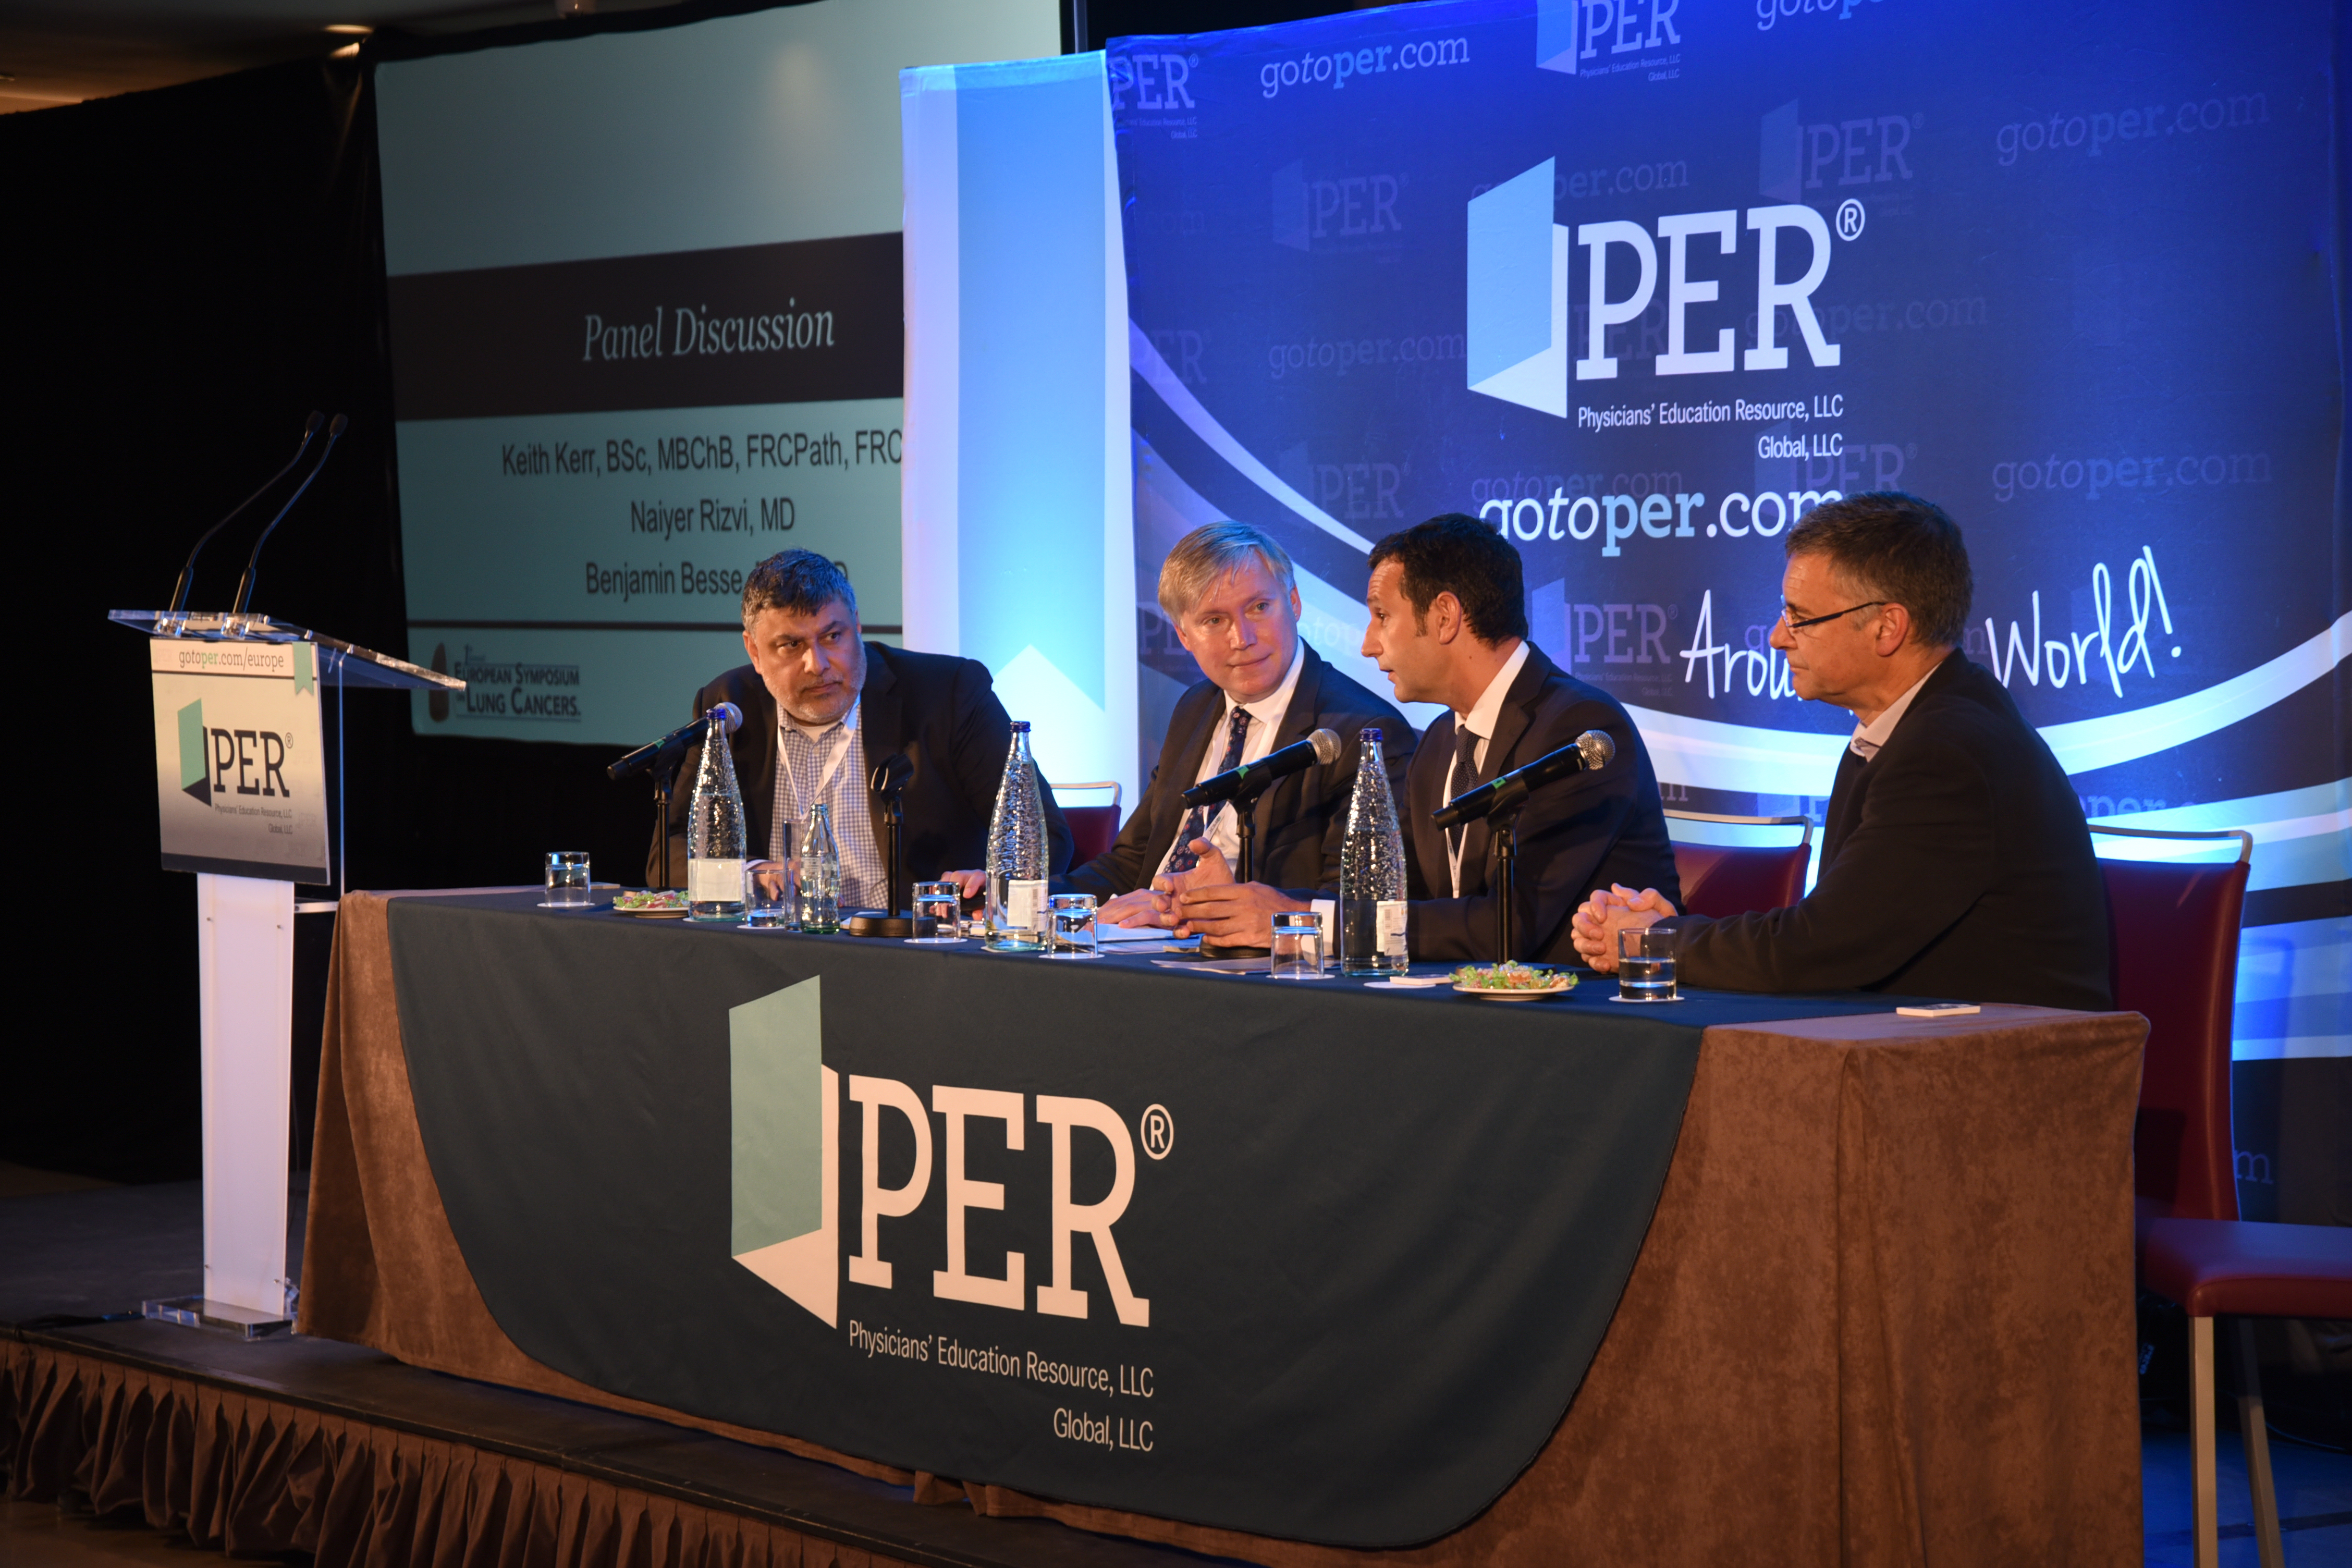 Naiyer Rizvi, MD; Prof. Dr. med. Martin Reck; Benjamin Besse, MD, PhD; Keith Kerr, BSc, MB, ChB, FRCPath, FRCPE